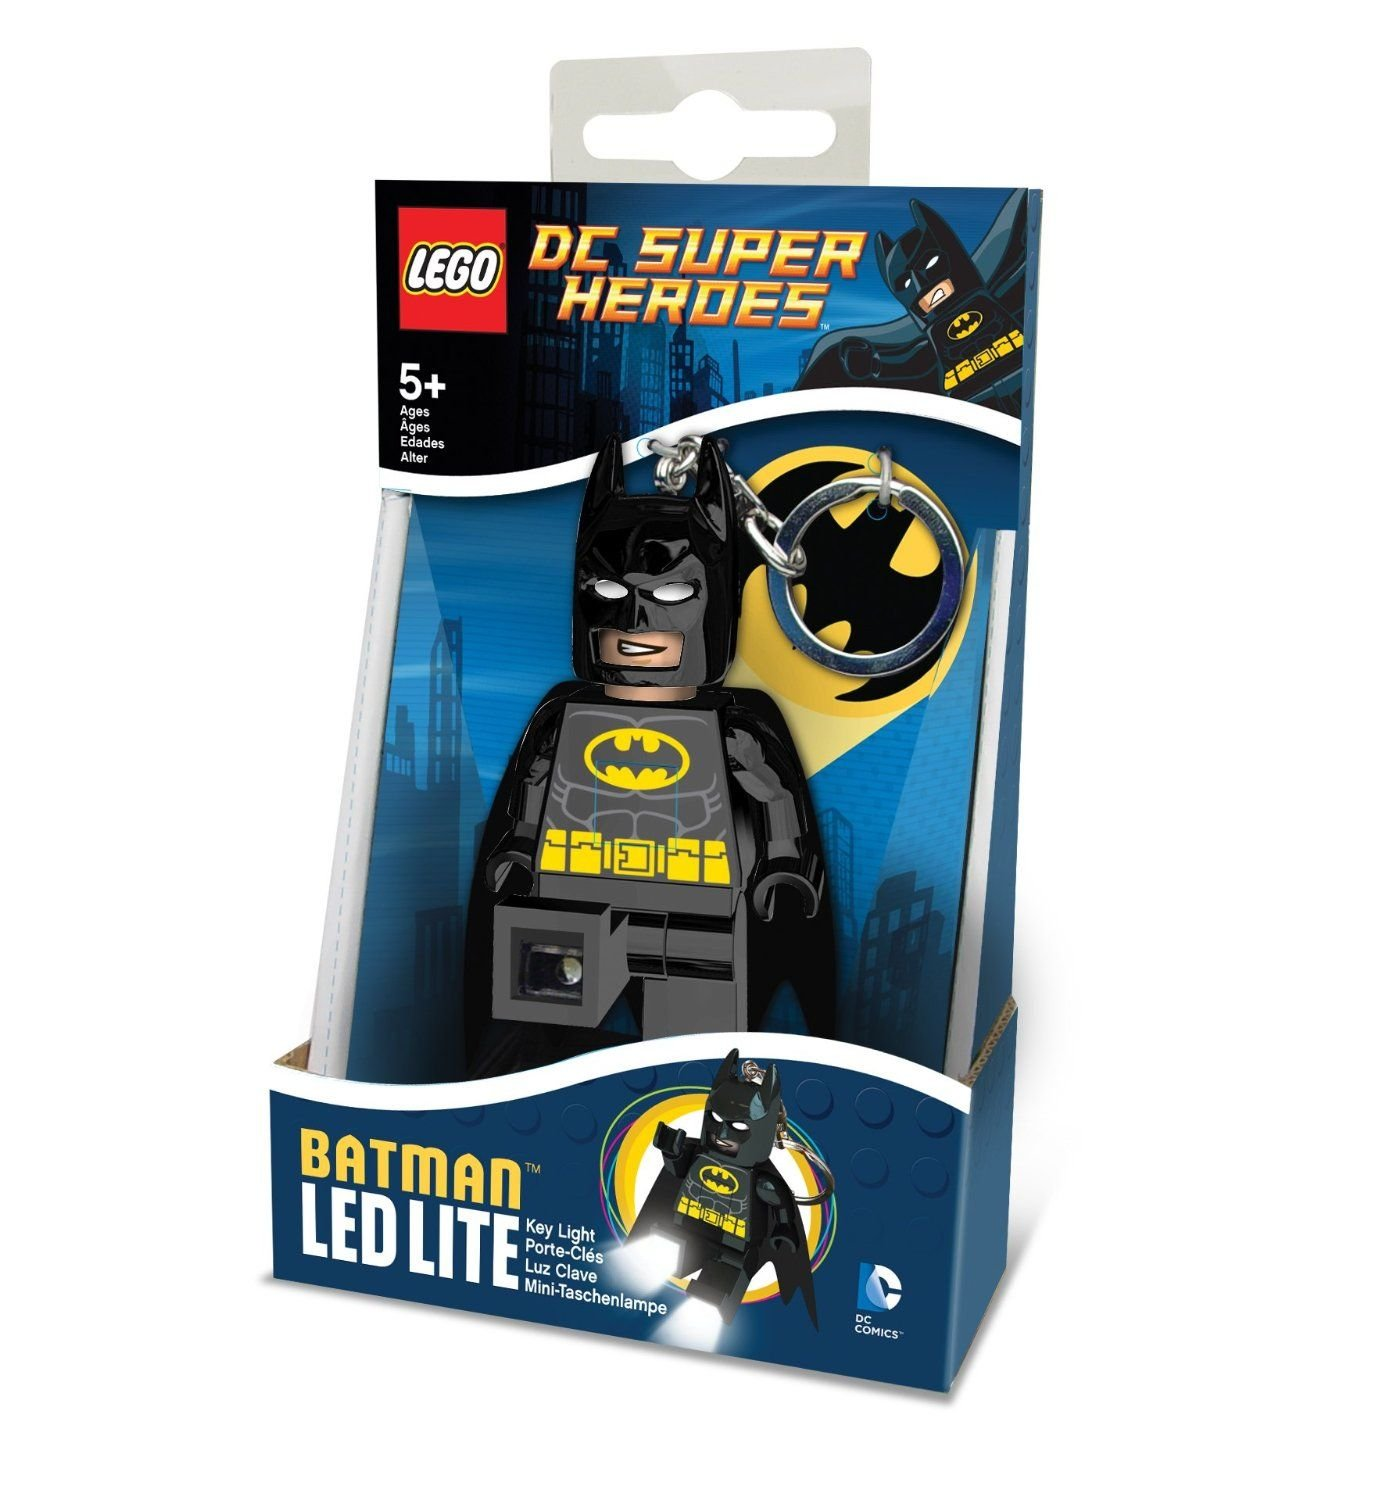 LEGO Llavero Batman LedLite DC Comics Super Heroes: Amazon ...